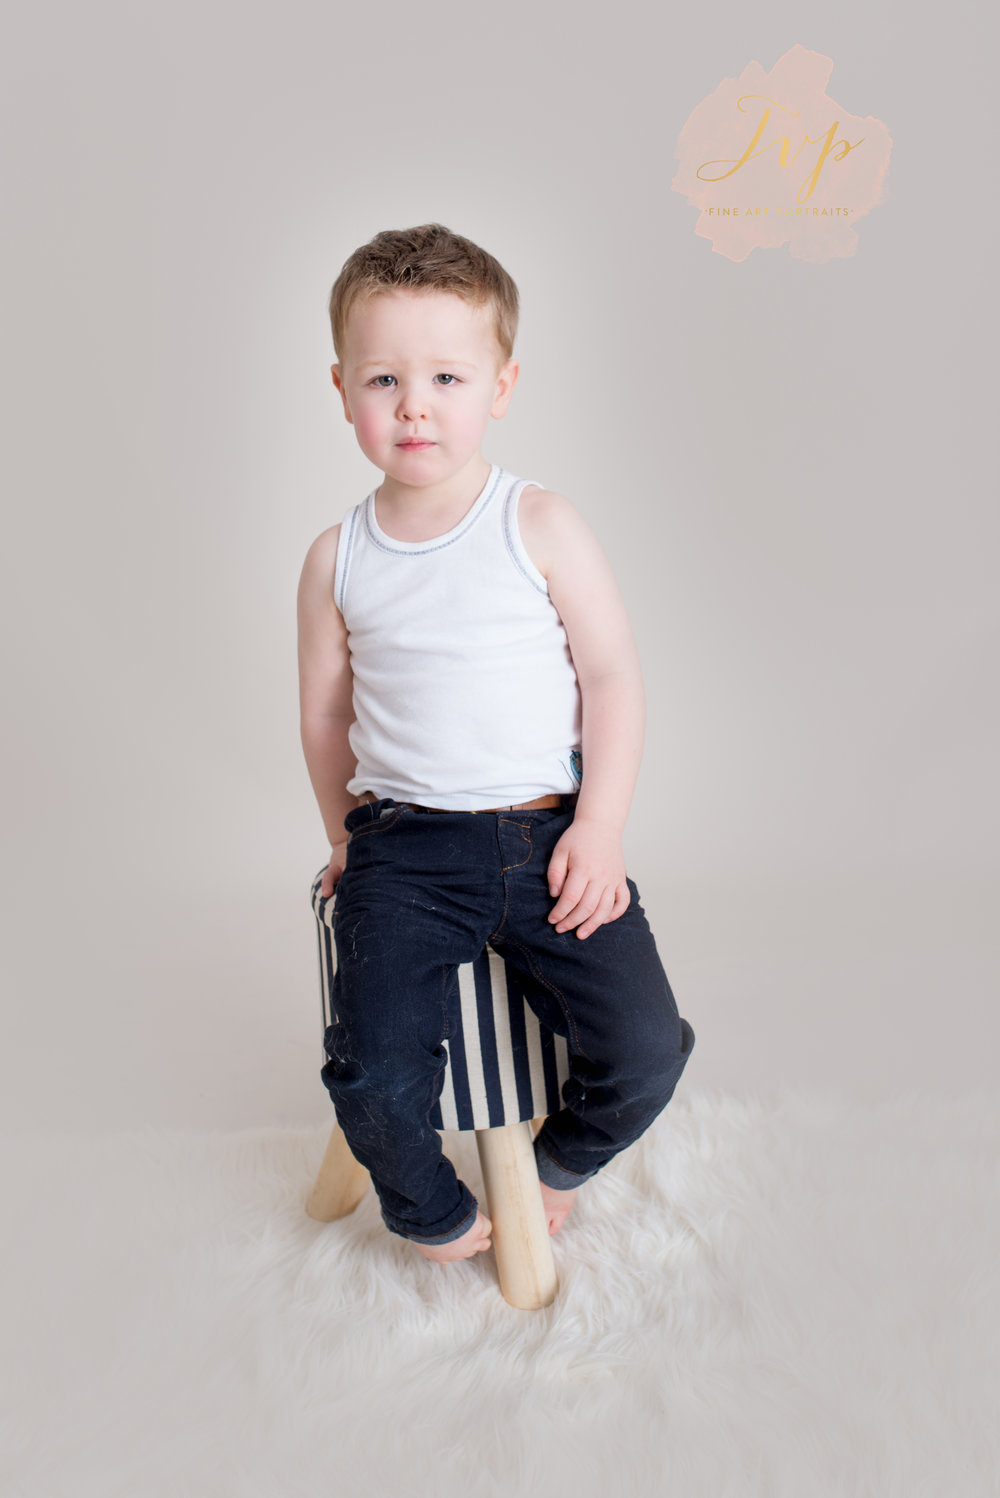 aidan-in-vest-family-photographer-glasgow